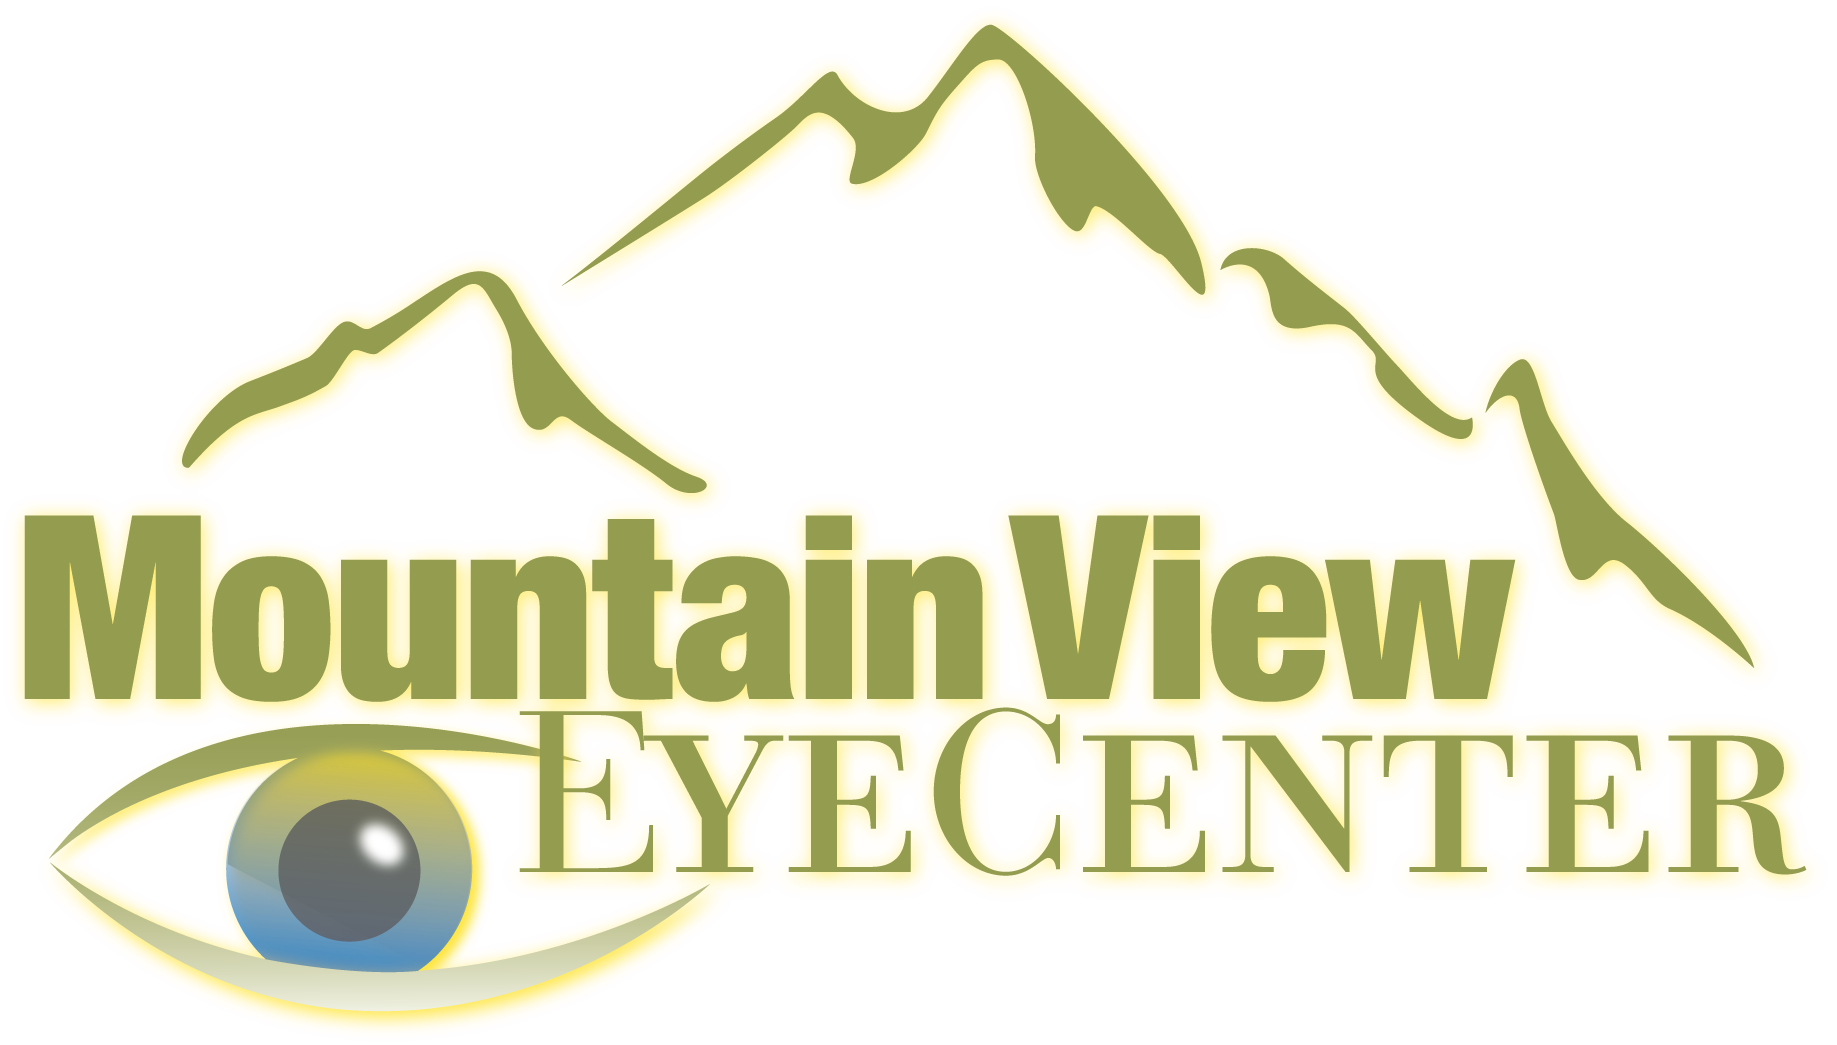 Mountain View Eye Center